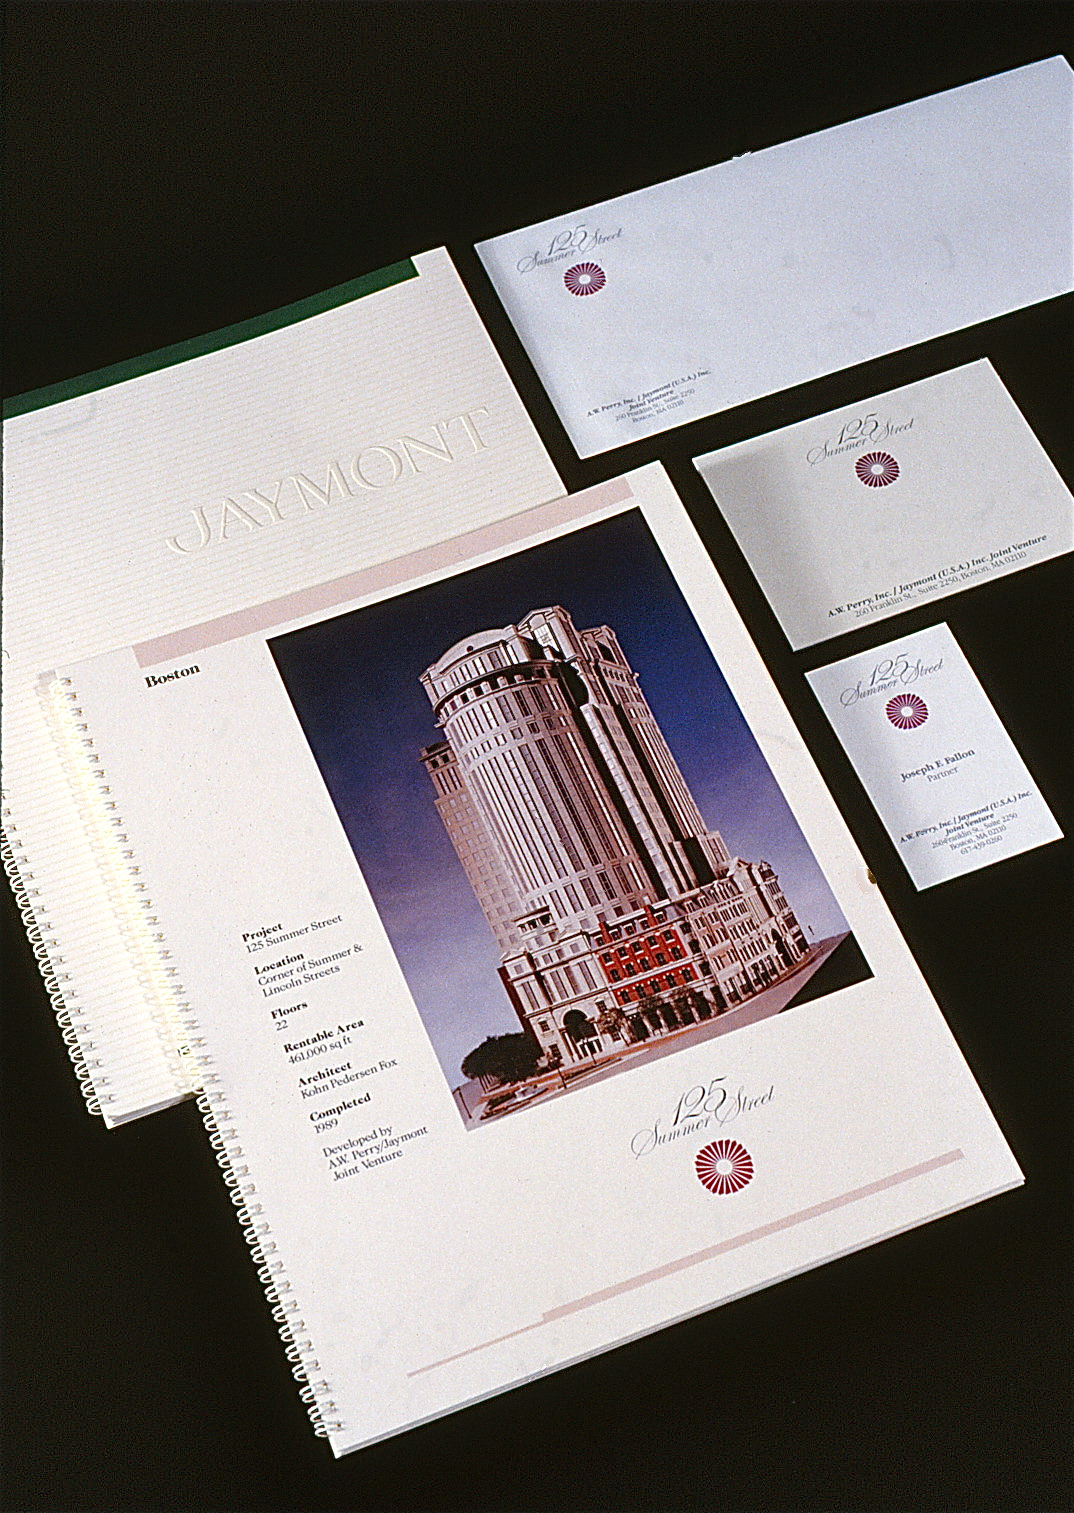 The symbol and logotype displayed on letterhead, envelope, and business cards.